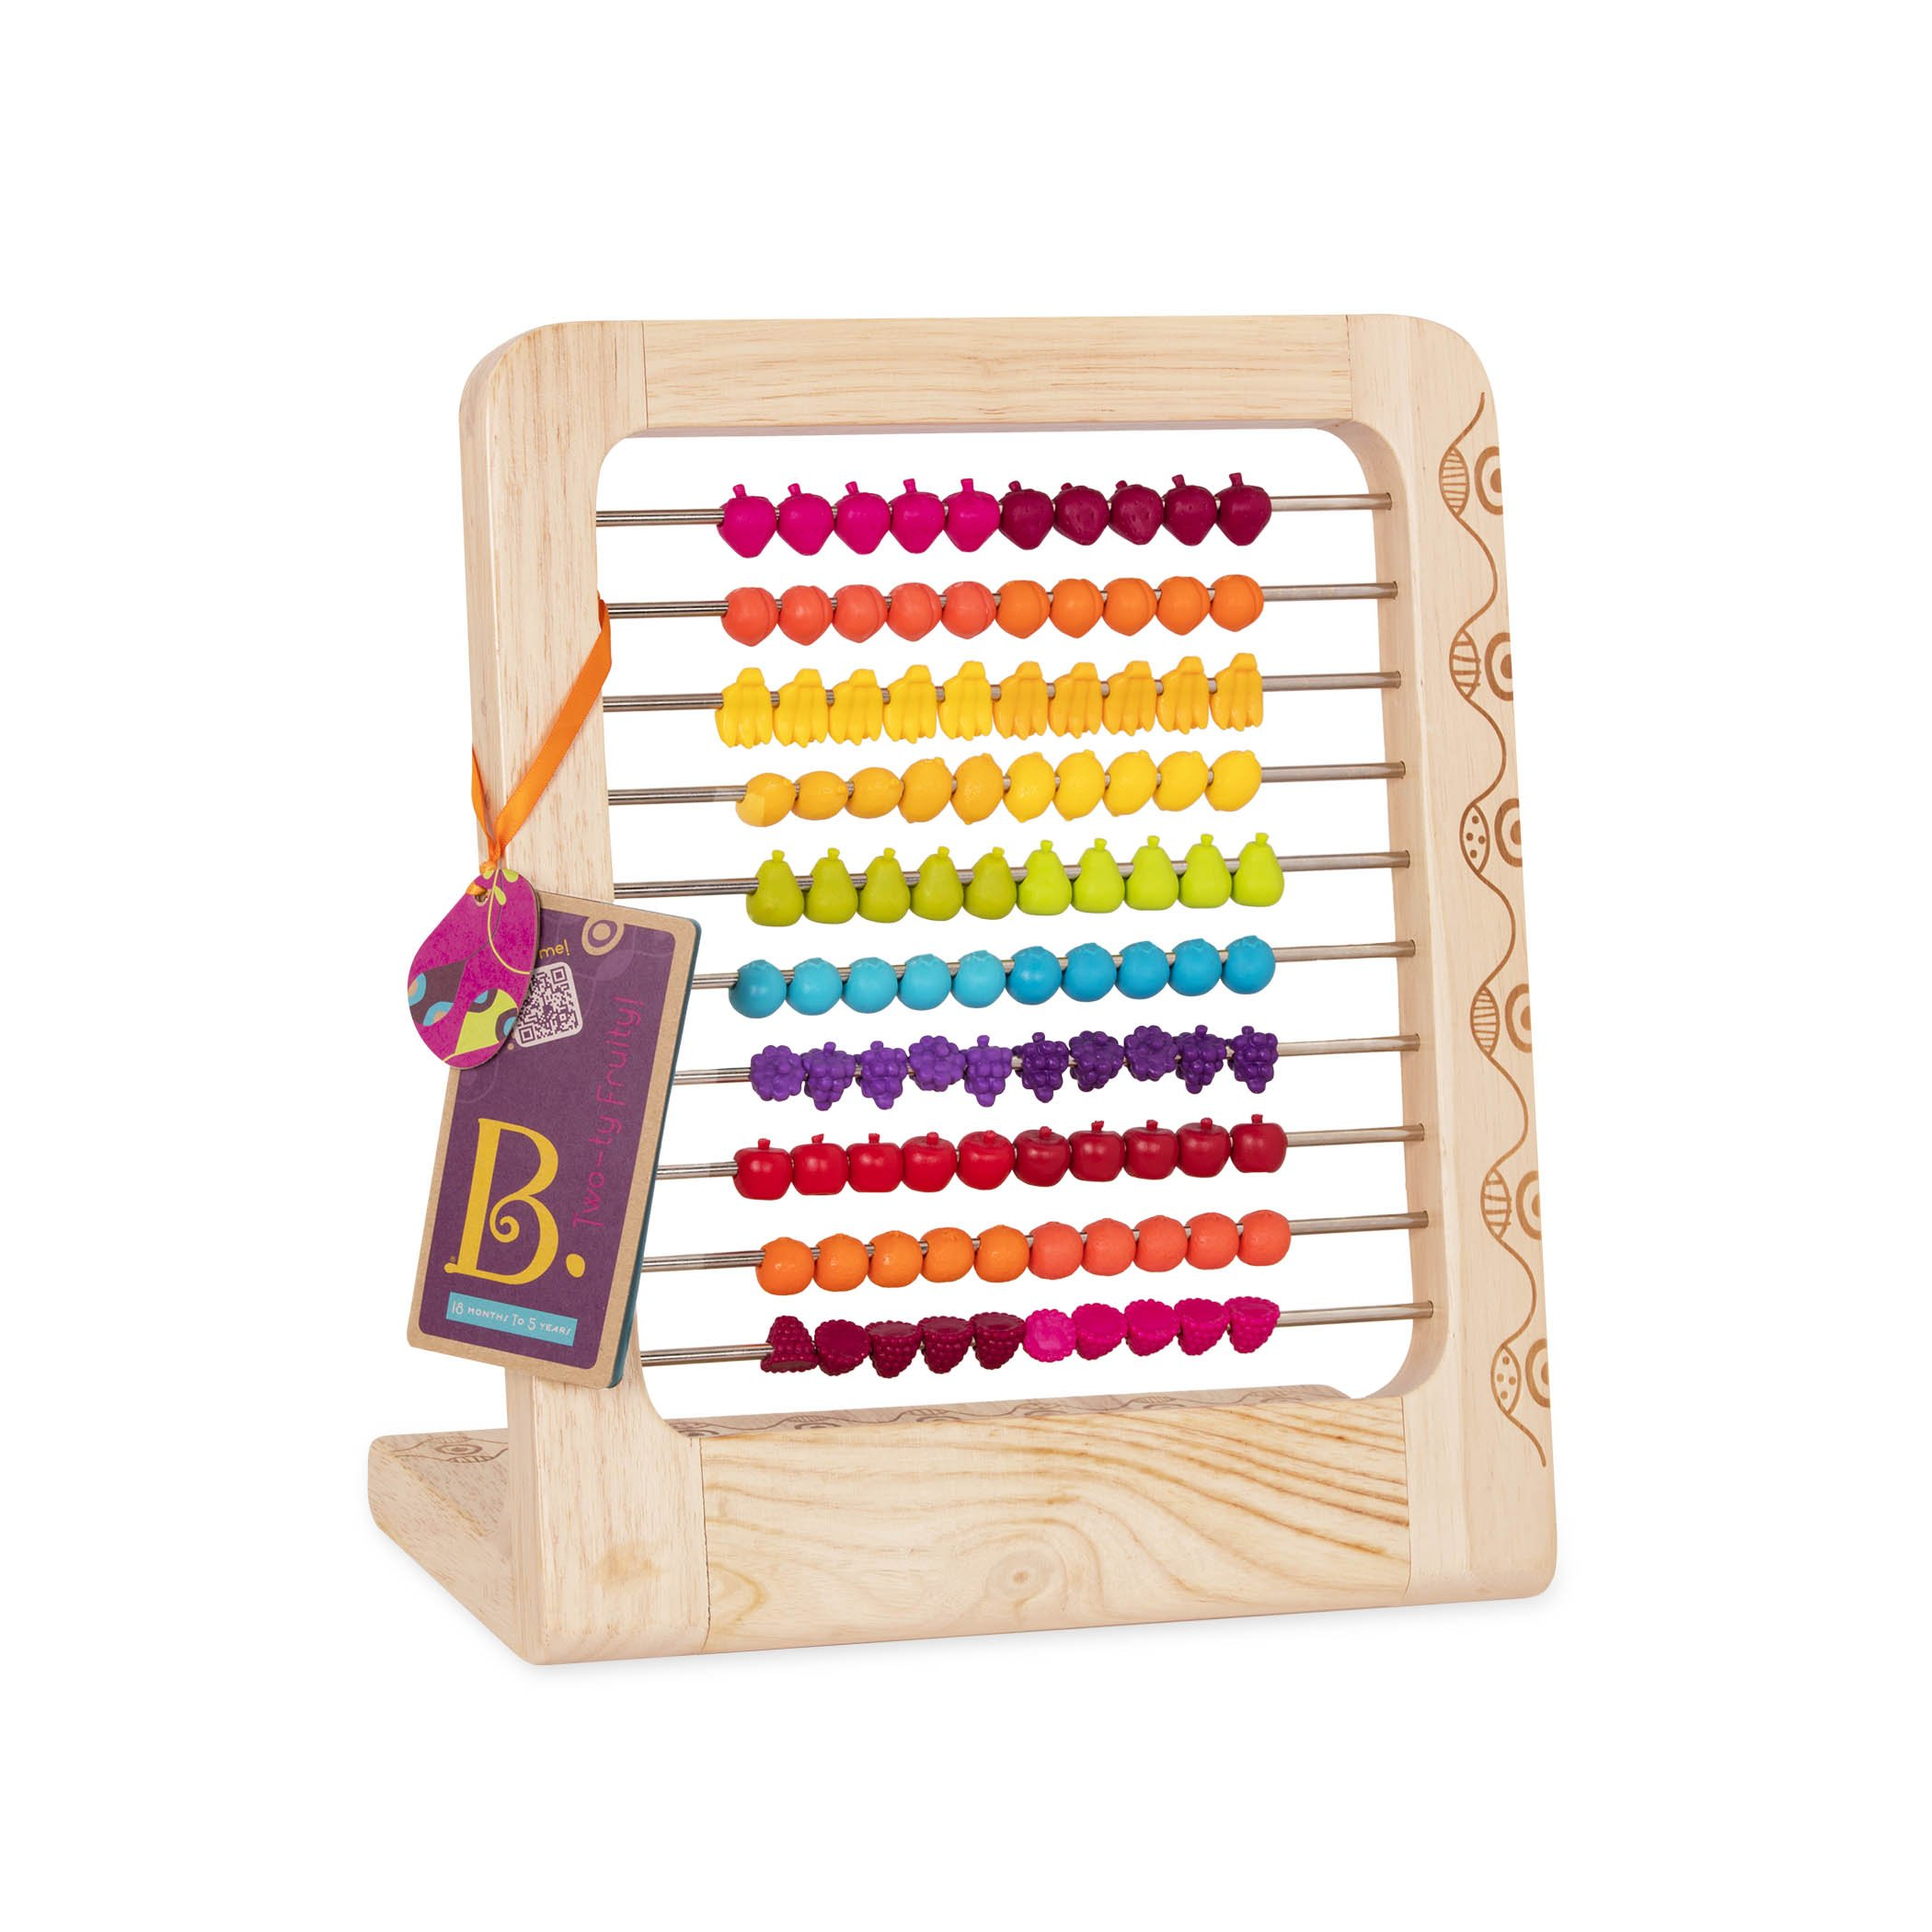 B. toys - Two-ty Fruity! Wooden Abacus Toy - Classic Wooden Math Game Toy for Early Childhood Education and Development with 100 Fruit Beads